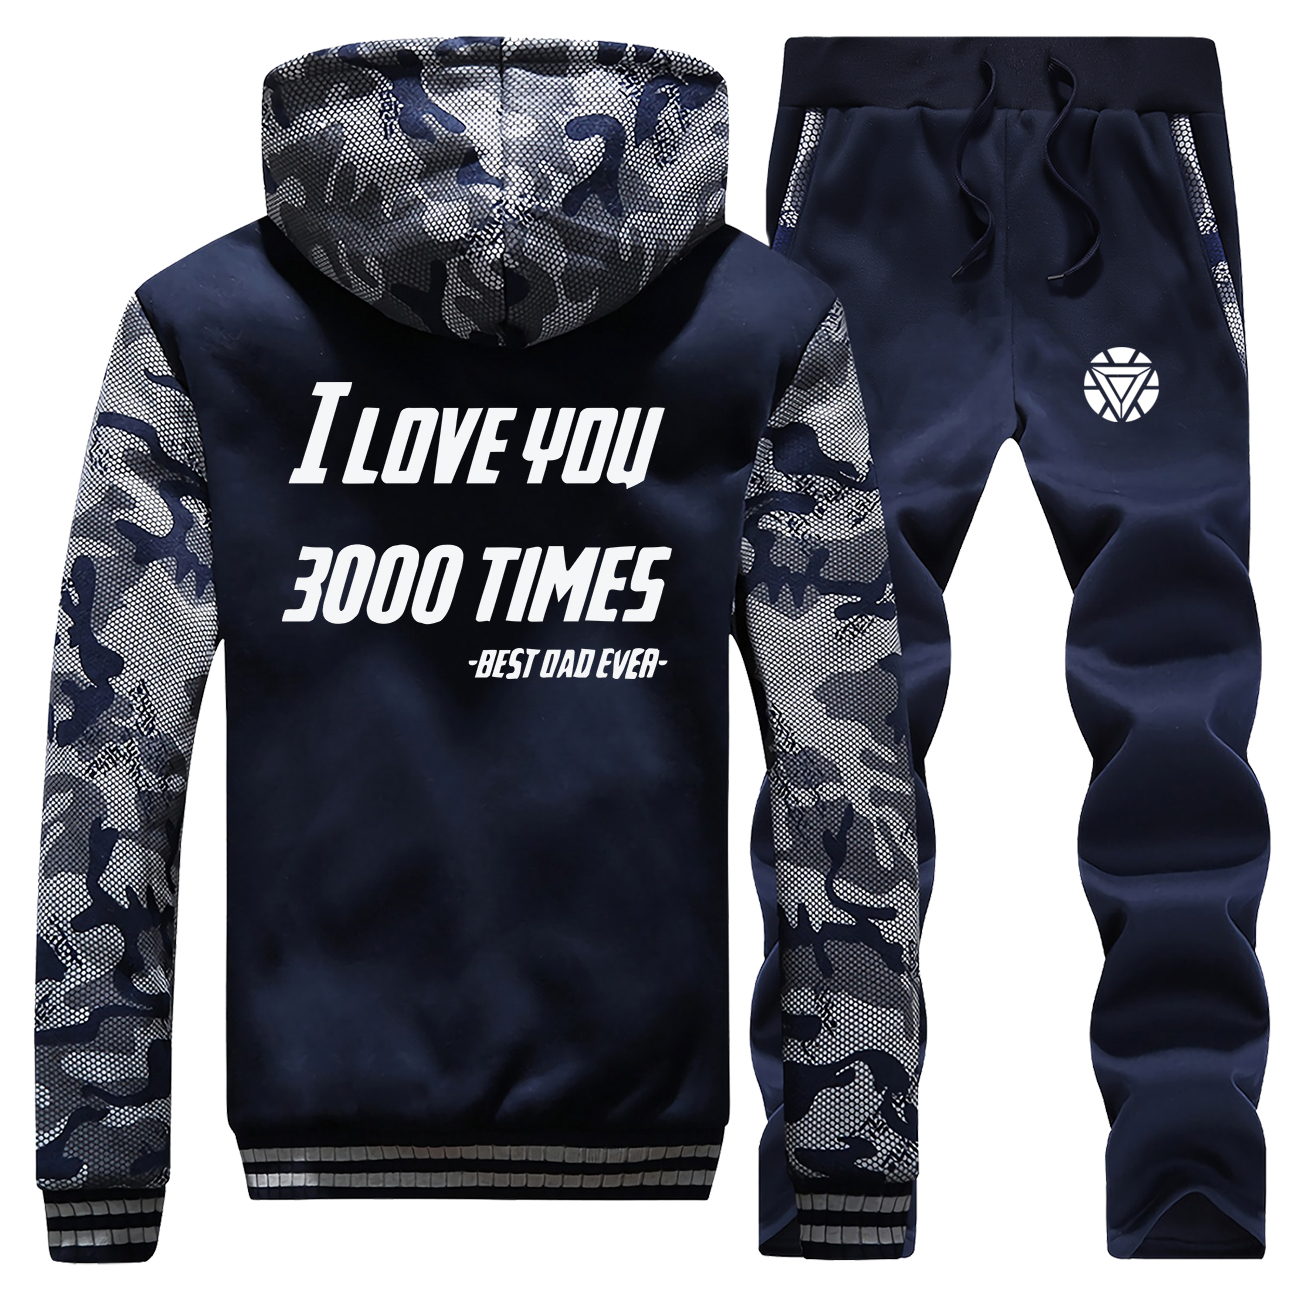 The Avengers 4 Iron Man I Love You 3000 New Winter Hoodies Mens Camouflage Coat Thick Suit Jackets Sportswear+Pants 2 Piece Set